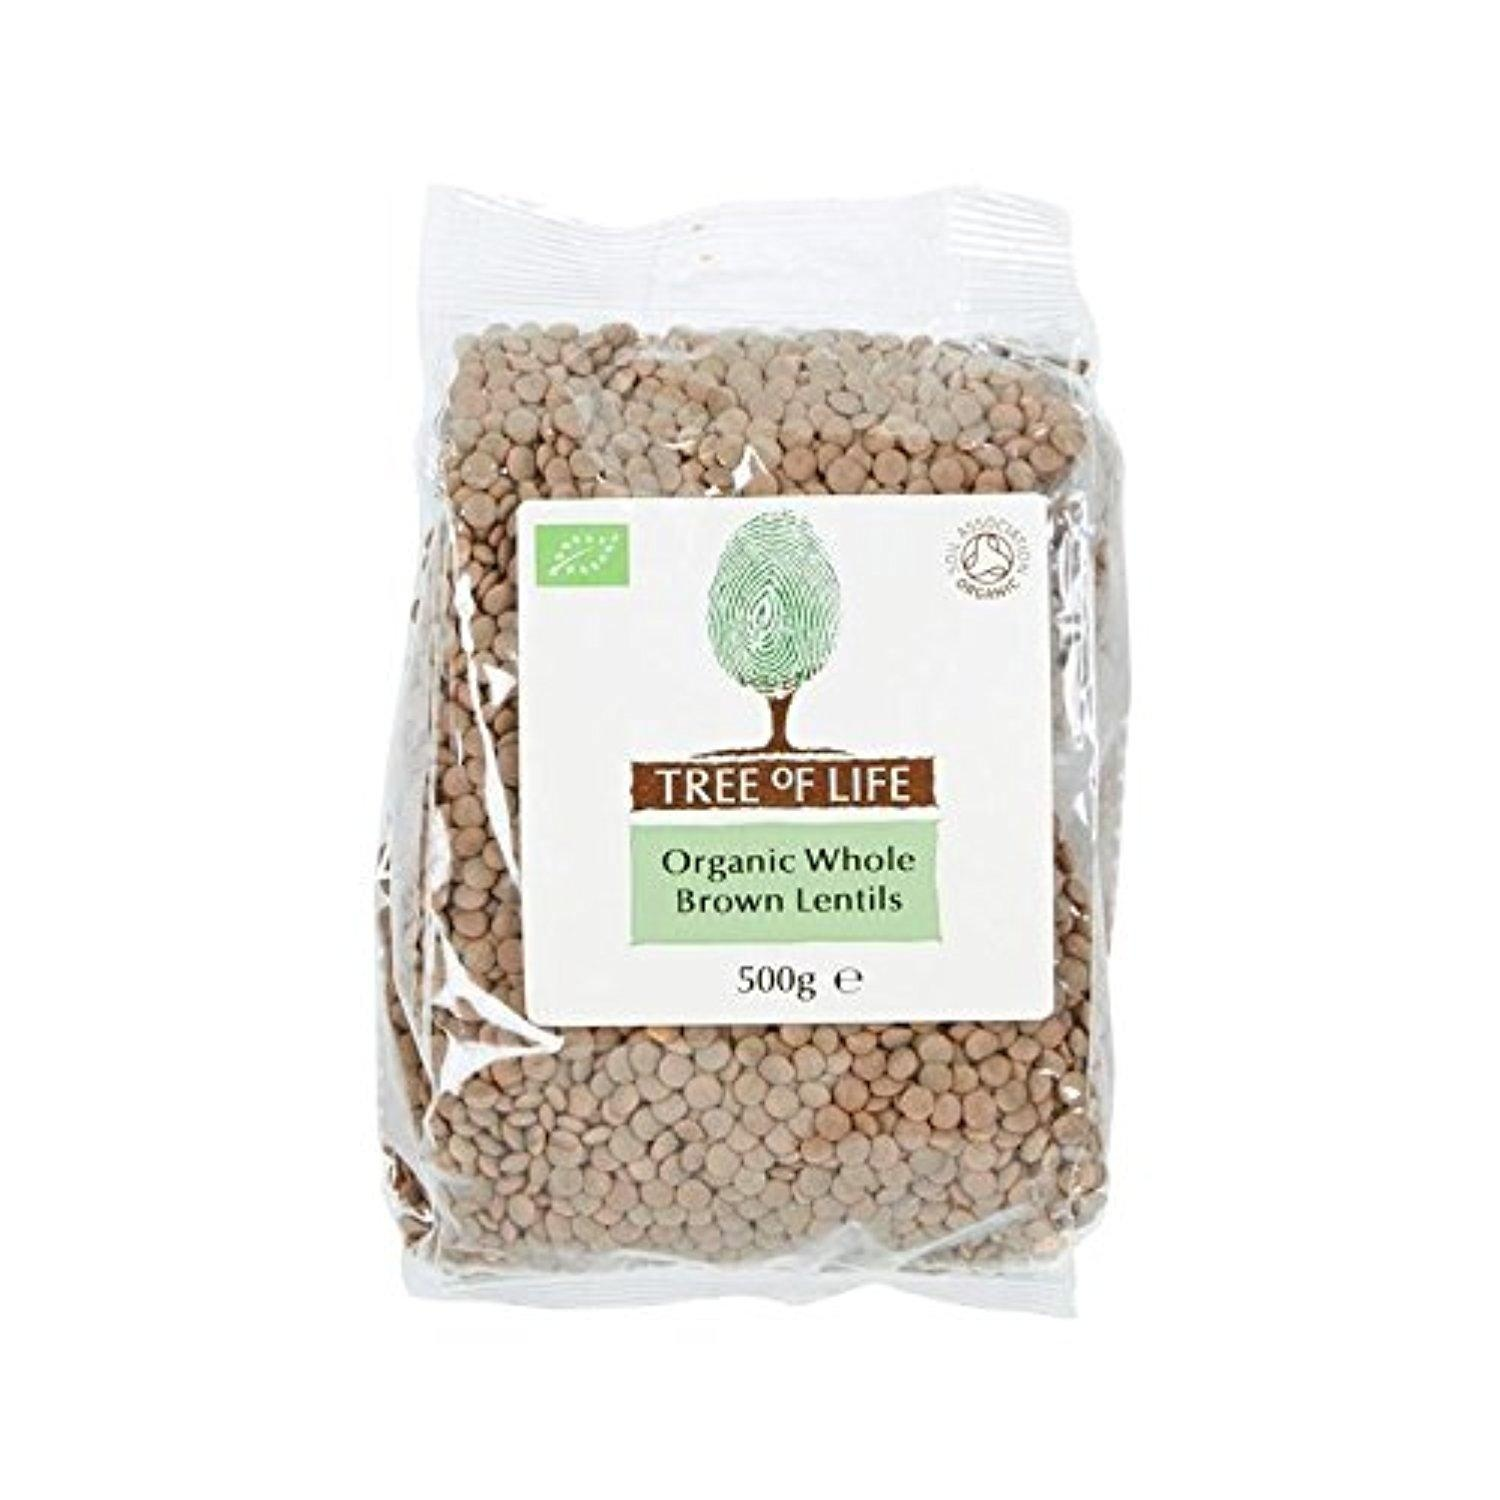 Tree of Life Organic Whole Brown Lentils 500g - Pack of 2